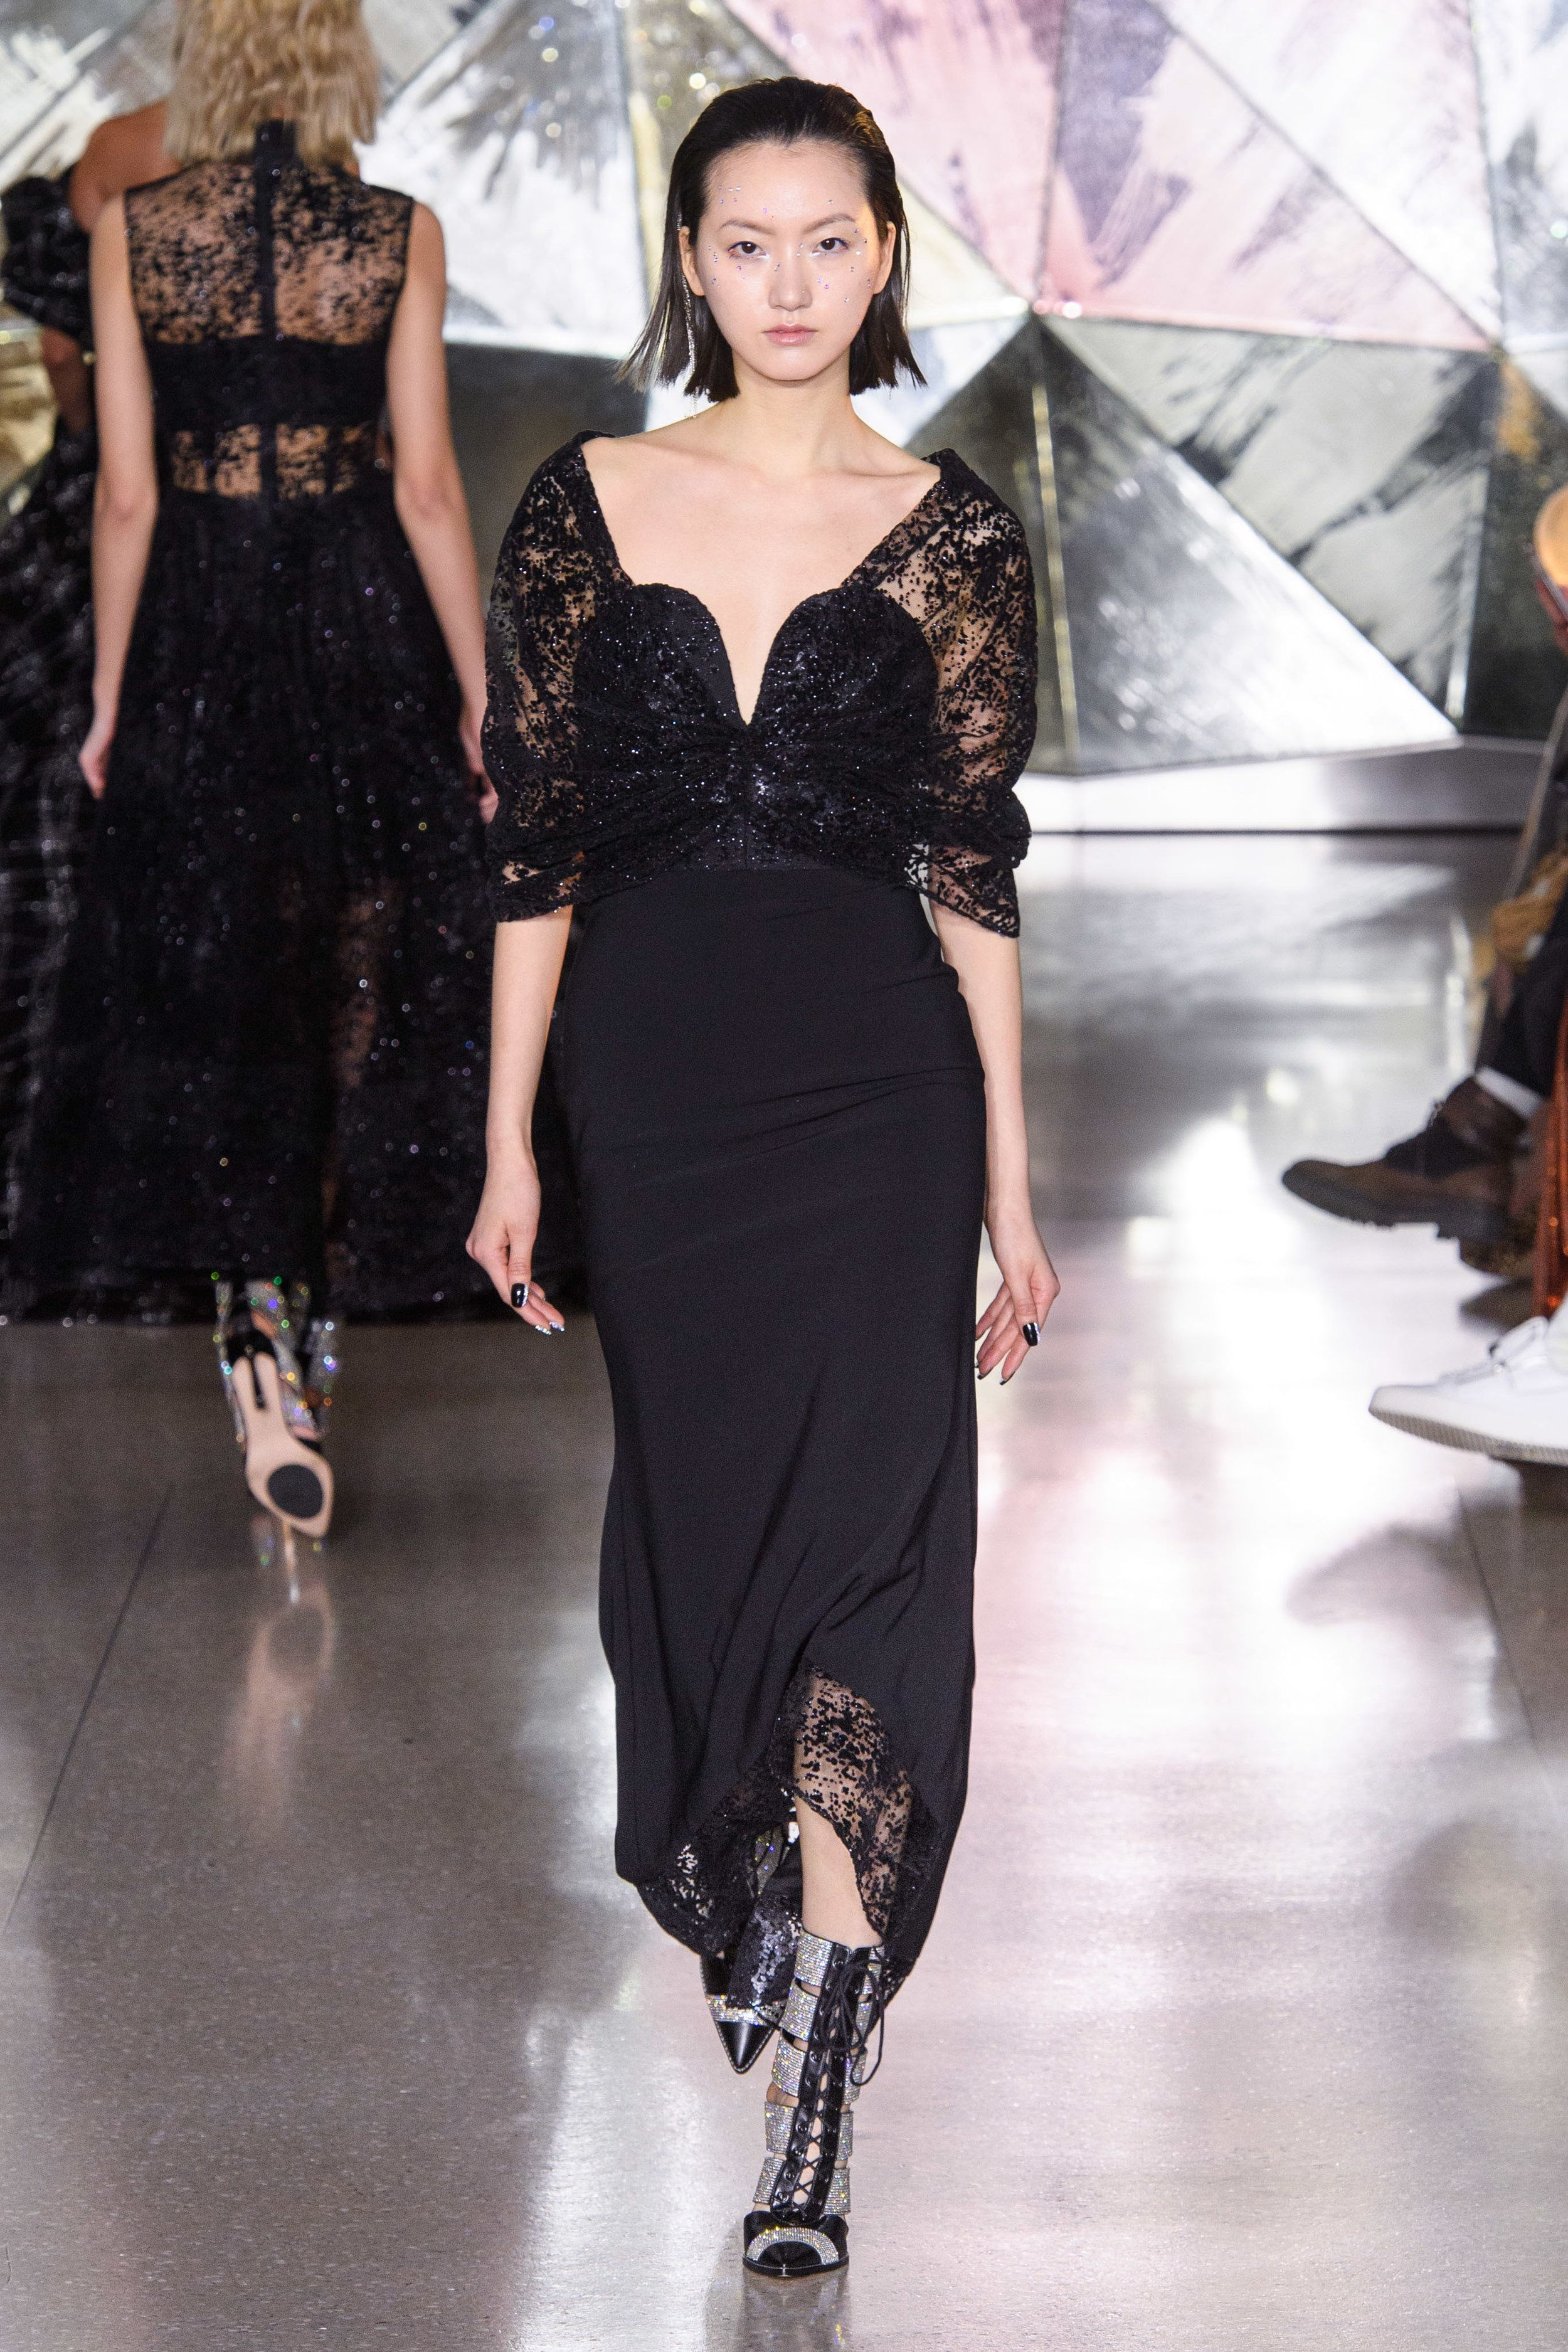 CHRISTIAN SIRIANO, COURTESY VOGUE RUNWAY